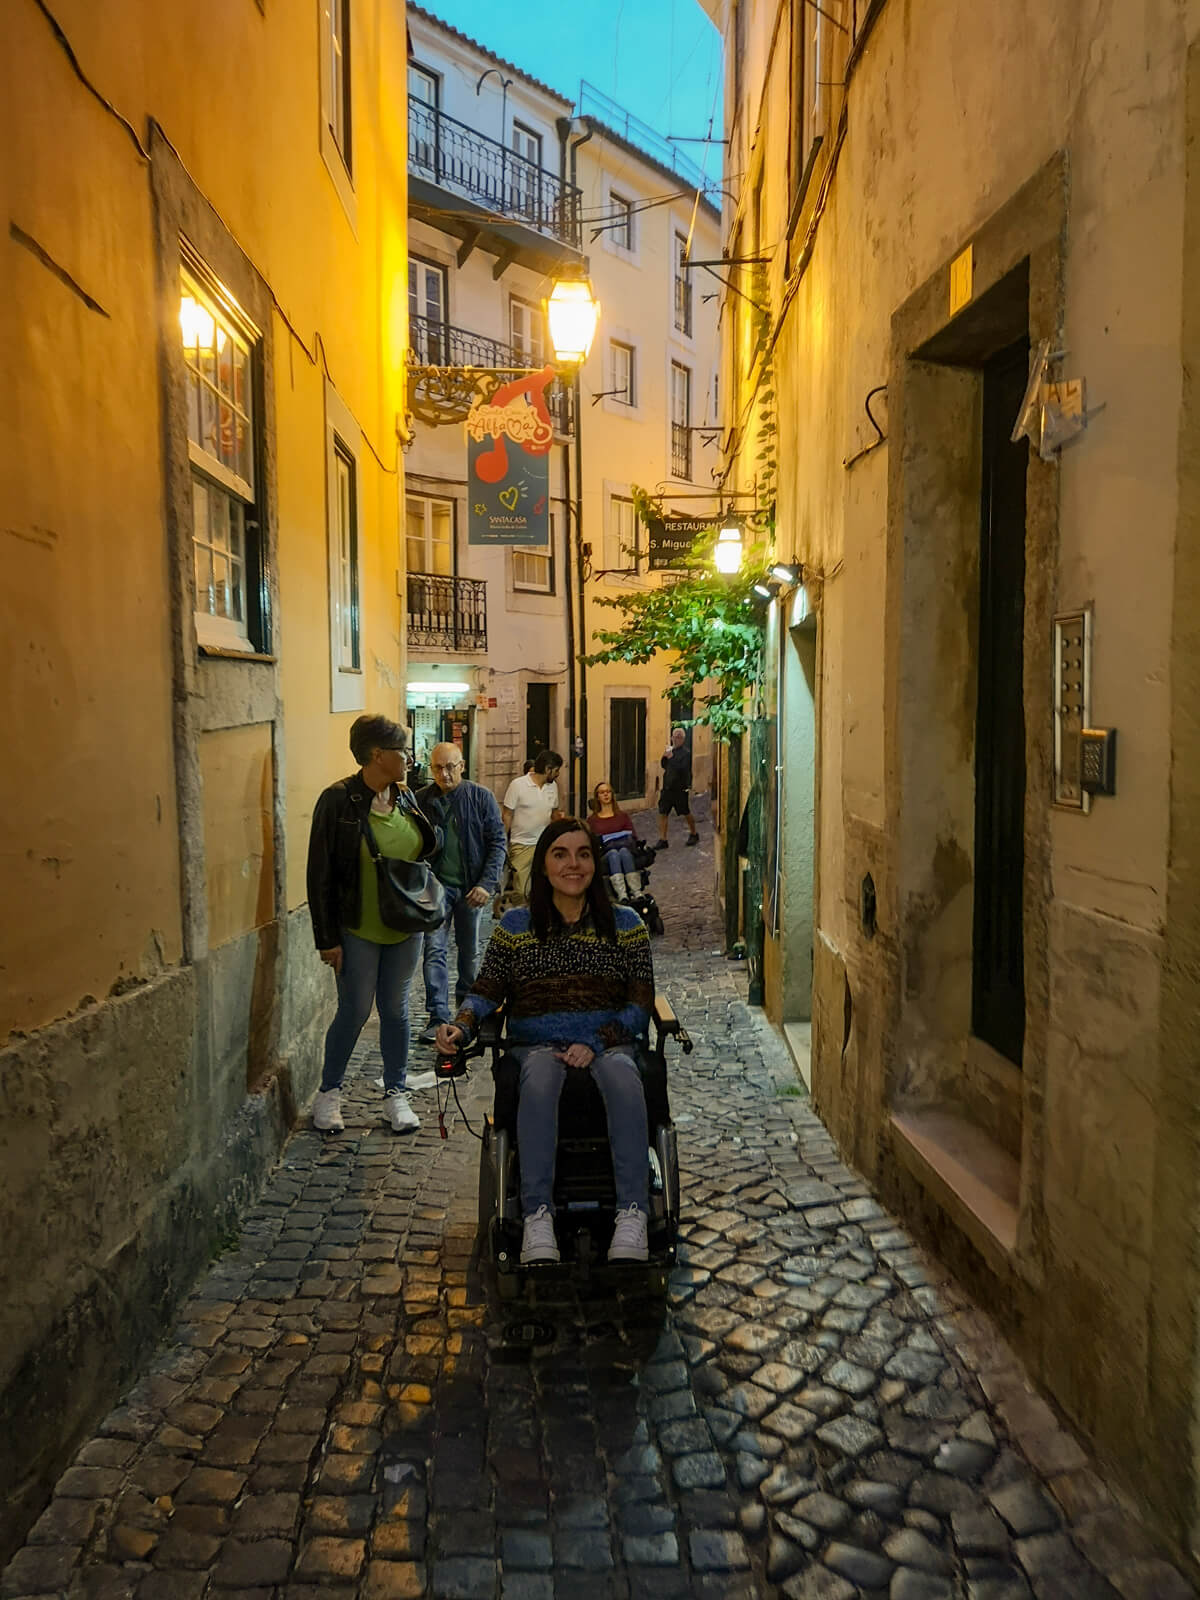 Emma driving her wheelchair over cobblestone streets in the old town Alfama district in Lisbon. Emma is wearing a multicolored top, blue skinny jeans and white converse shoes.